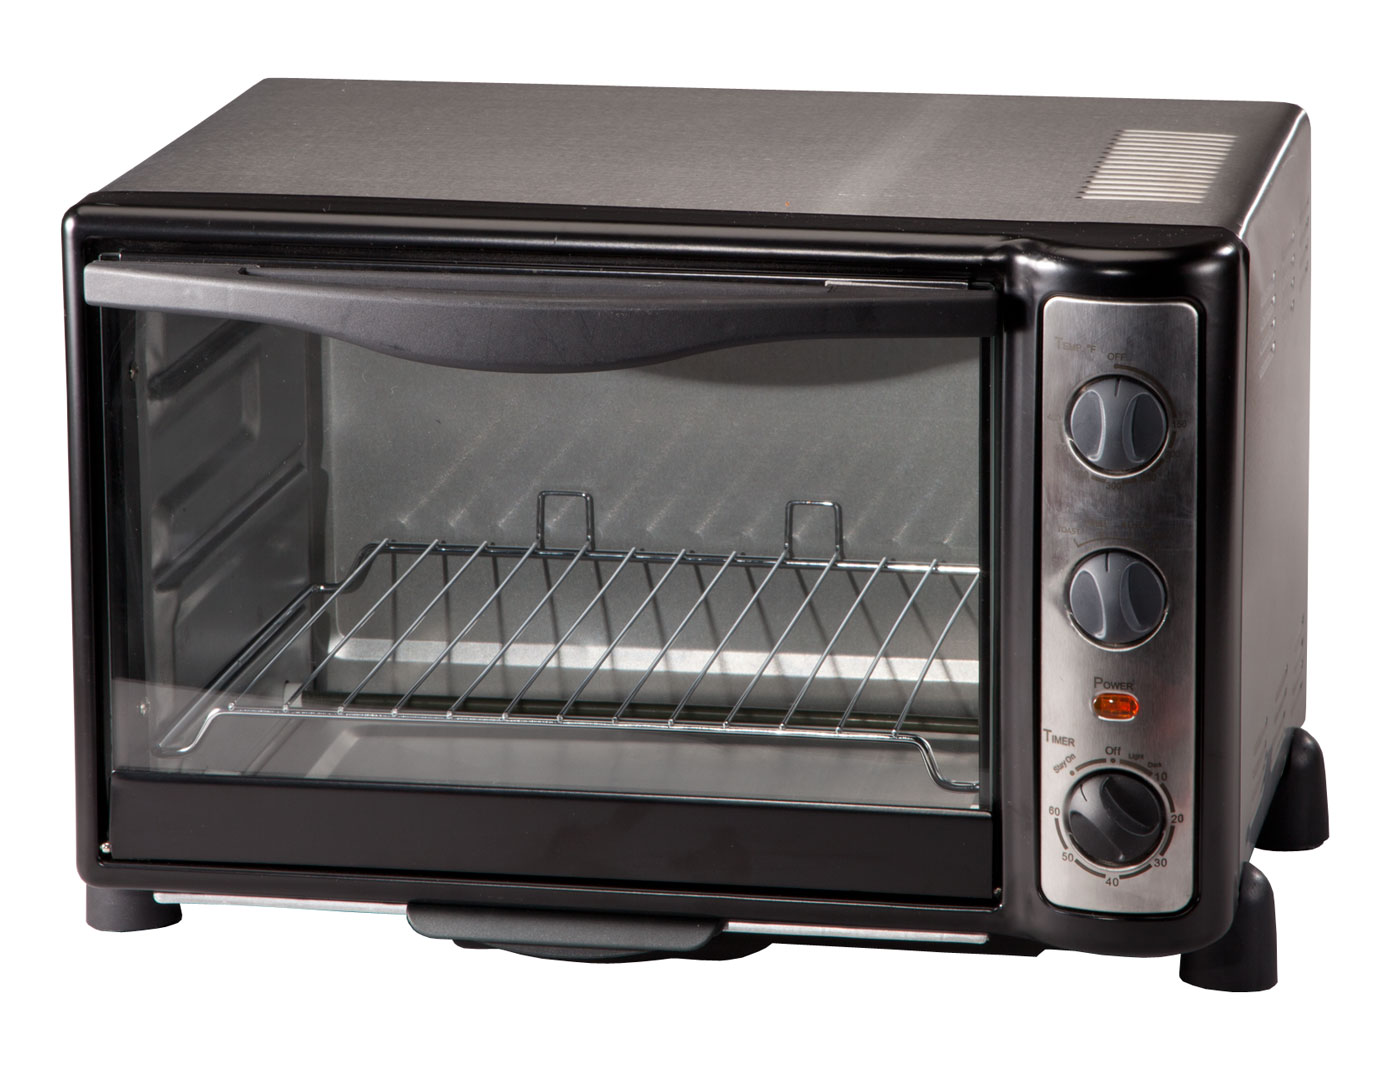 Toaster Oven by The Home Marketplace This generously sized, versatile toaster oven by Home-Style KitchenTM does it all, from broiling to baking to cooking. It heats food quickly and efficiently up to 450 -- no need to heat up your full-size oven for fast meals. Stainless steel toaster oven features baking and broiling controls and a timer for perfect results every time. Glass windows allows you to see when food is ready. Durable, stylish stainless steel finish complements any decor. ETL listed. Interior measures approximately 12  L x 9 1/3  W x 8 1/2  H. Measures 17  L x 12  W x 11 1/2  H overall.